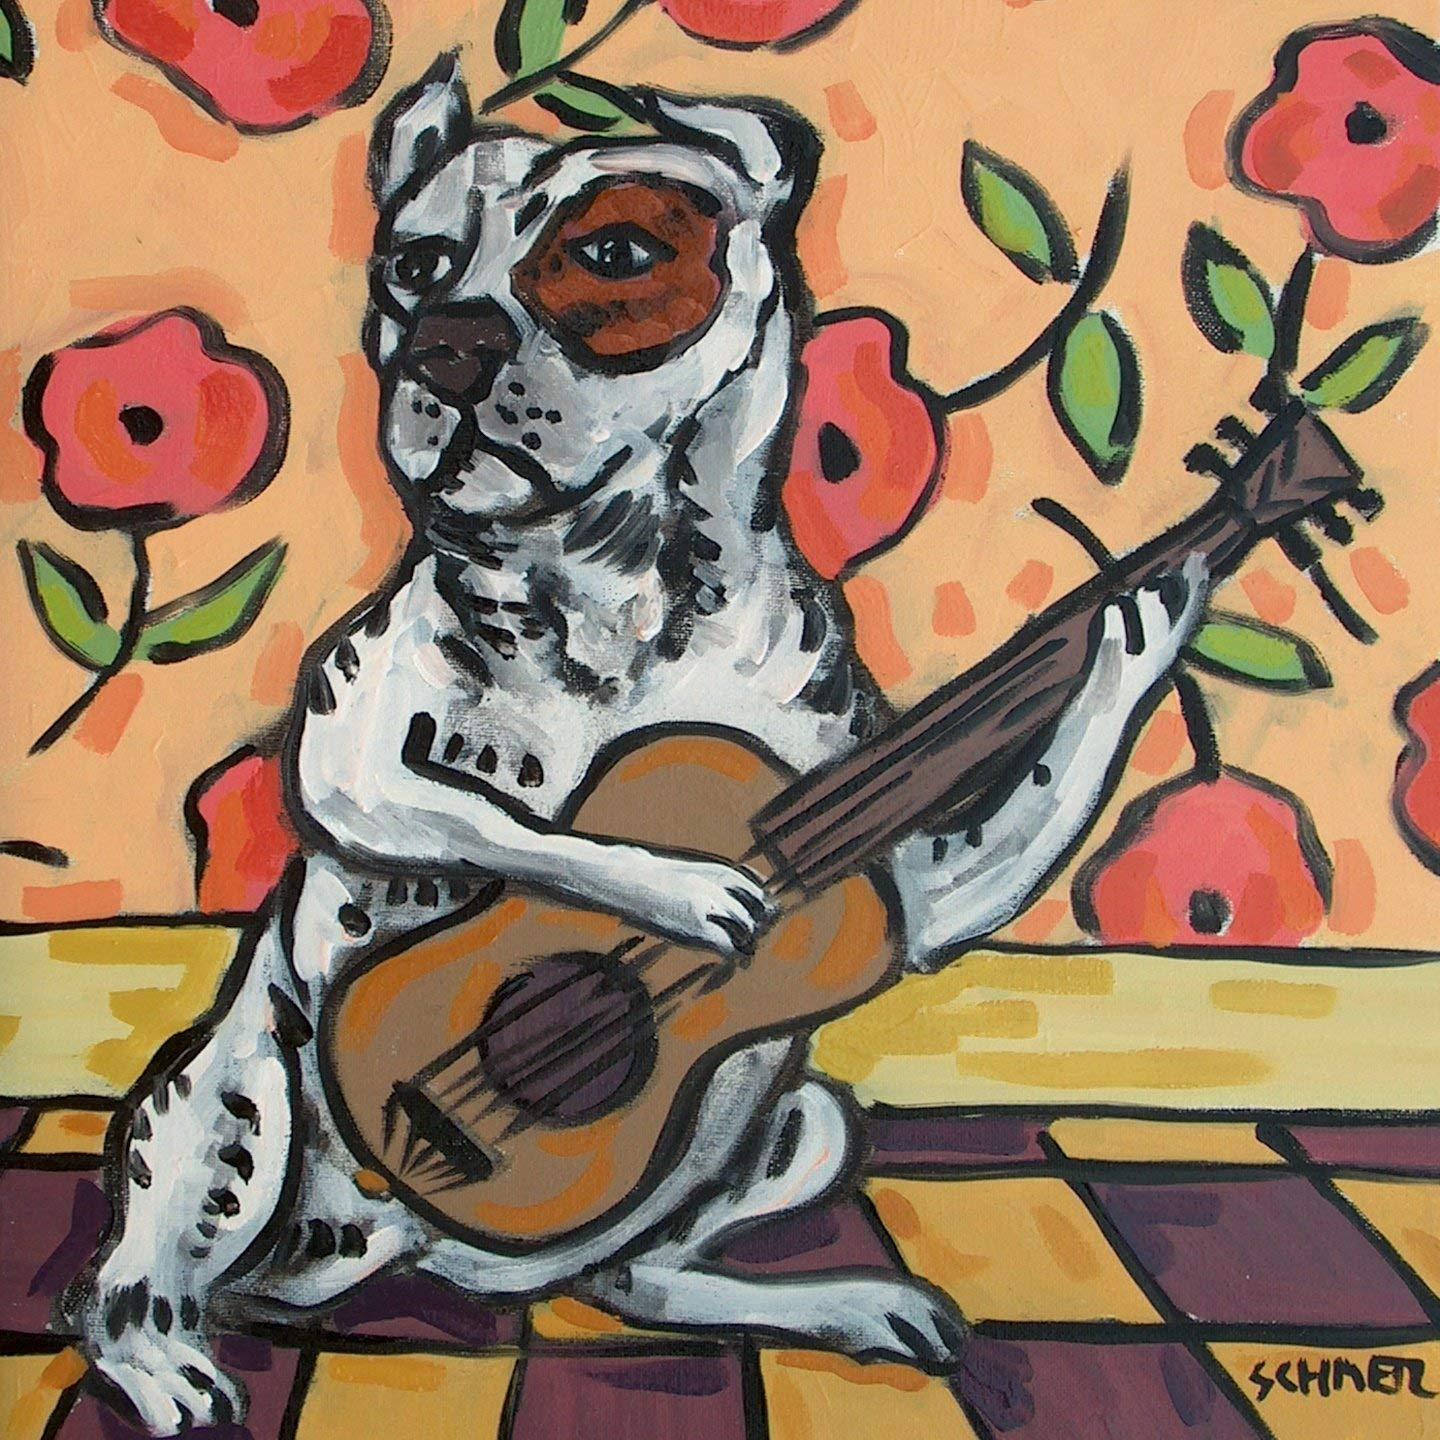 pit bull playing guitar dog art tile coaster gift